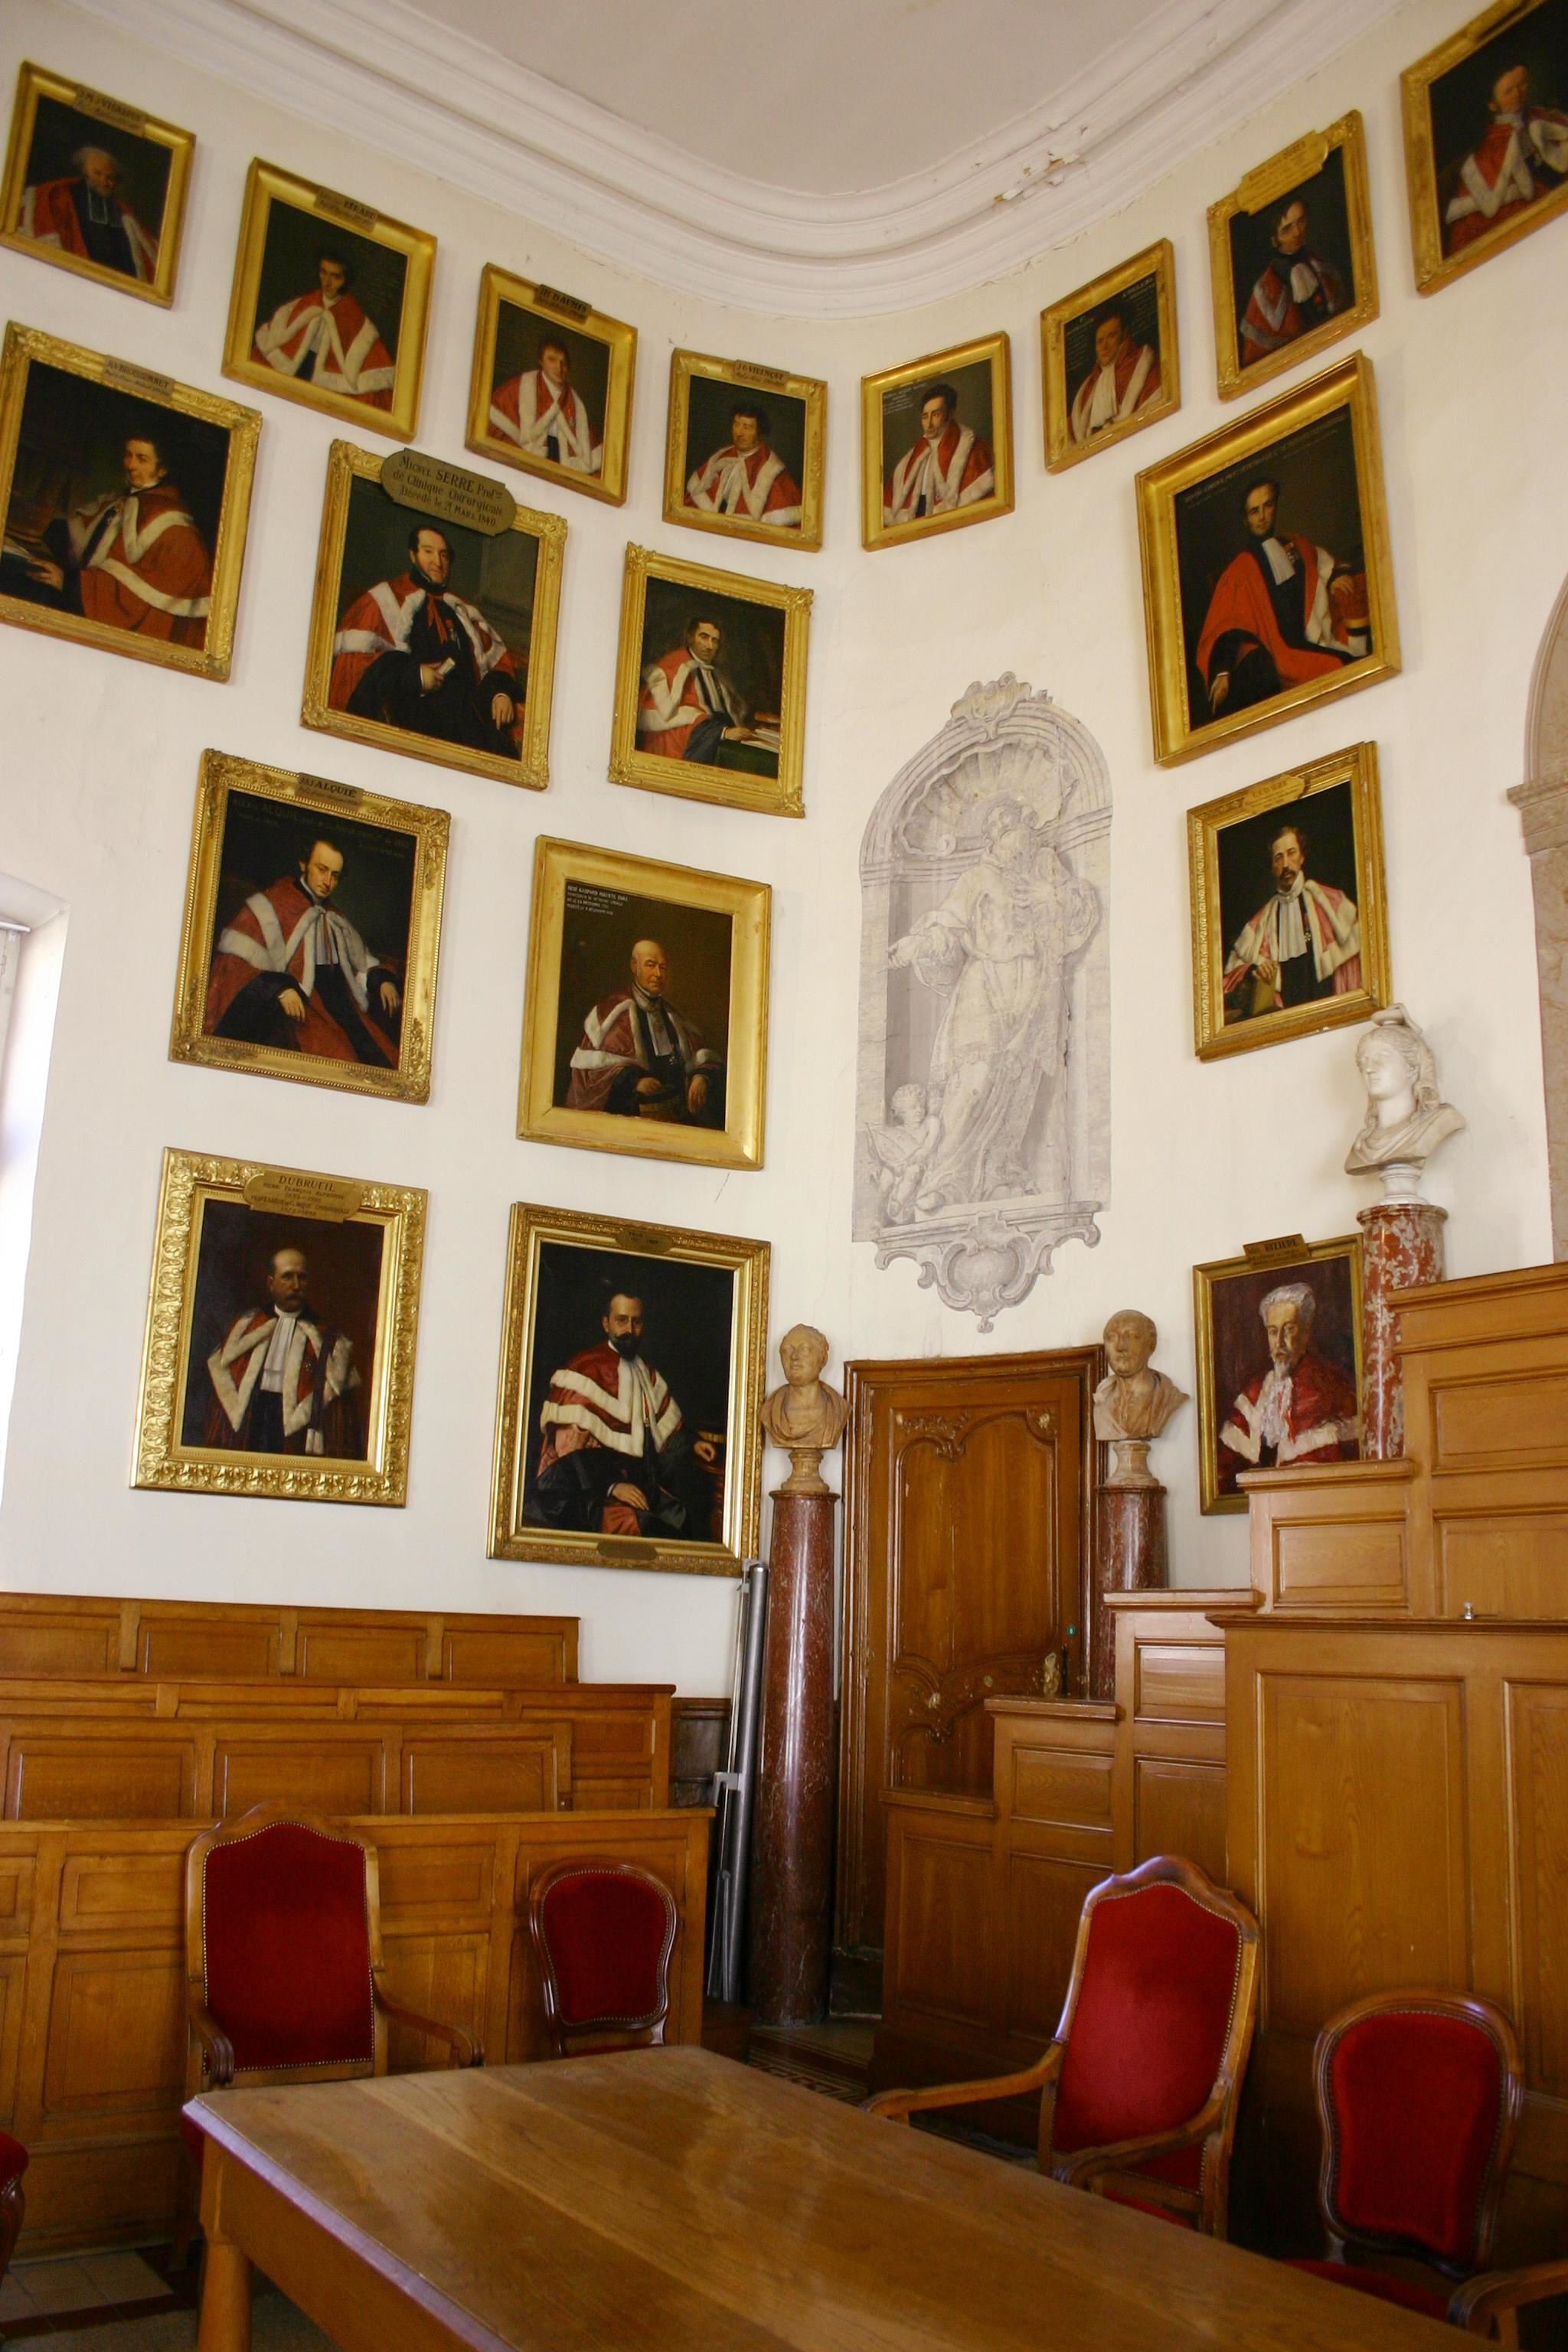 French guided tour - Faculty of Medicine : historical place